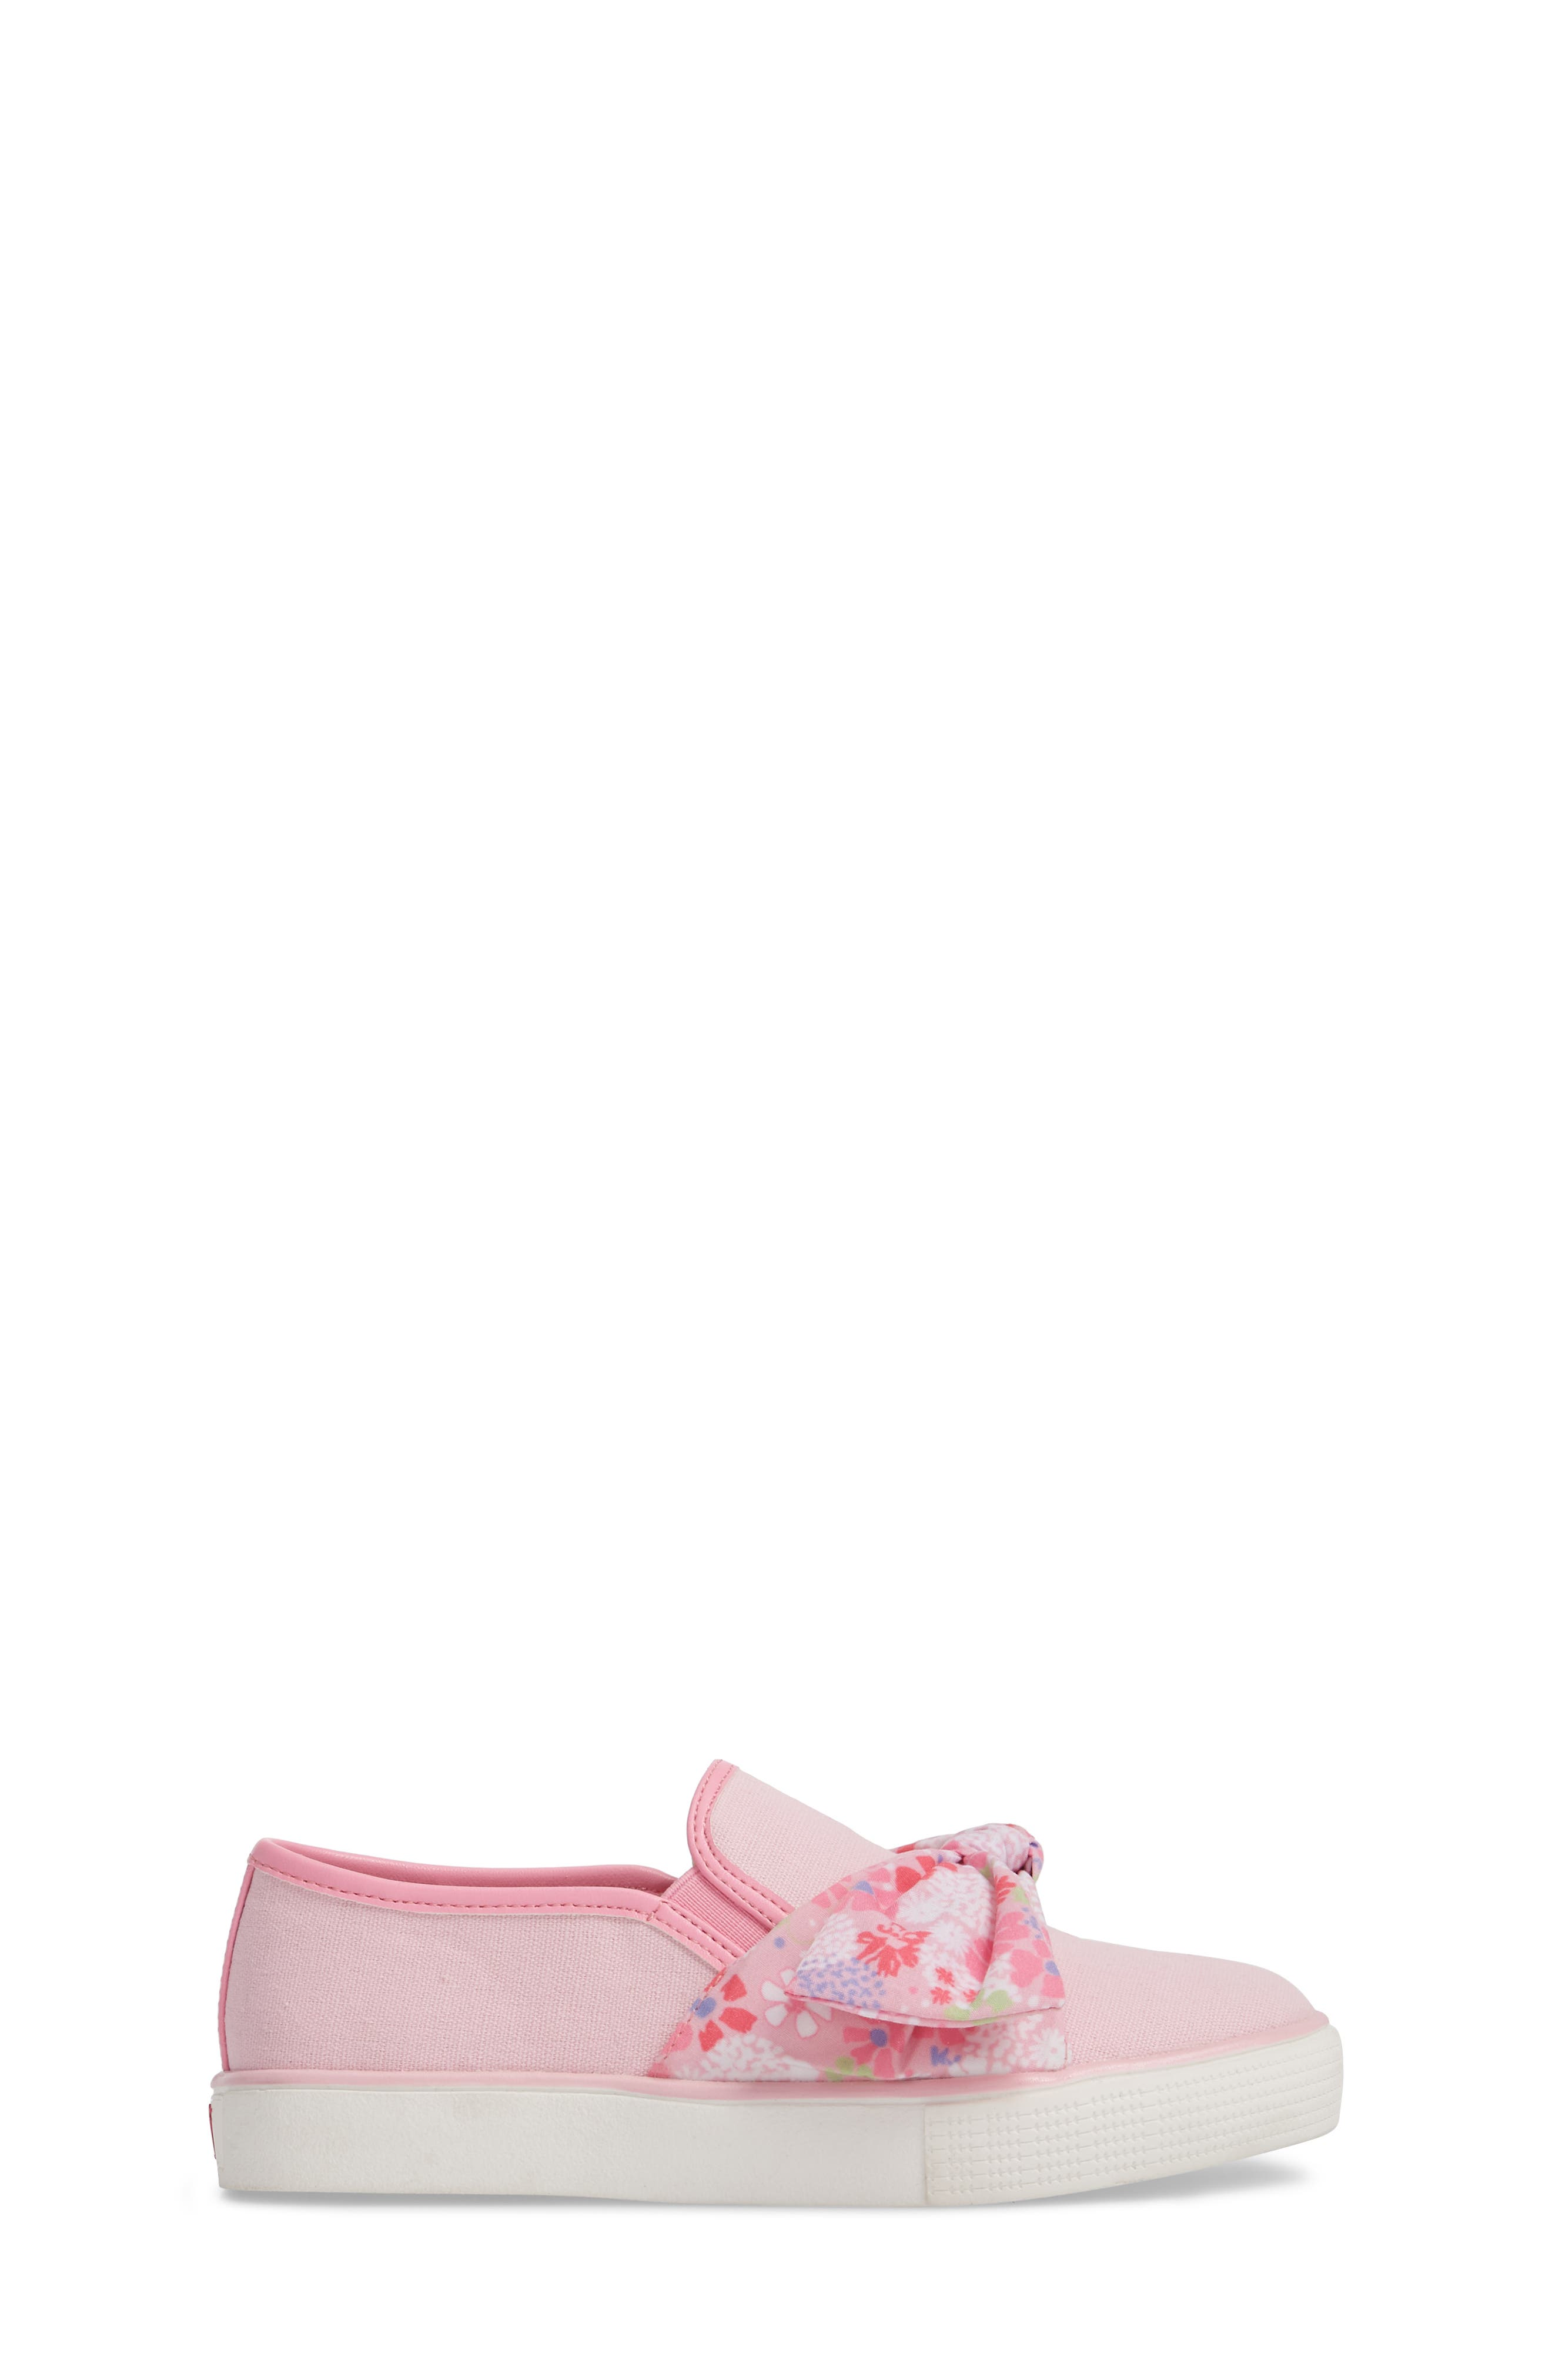 Ashlyn Bow Slip-On Sneaker,                             Alternate thumbnail 5, color,                             Orchid Pink